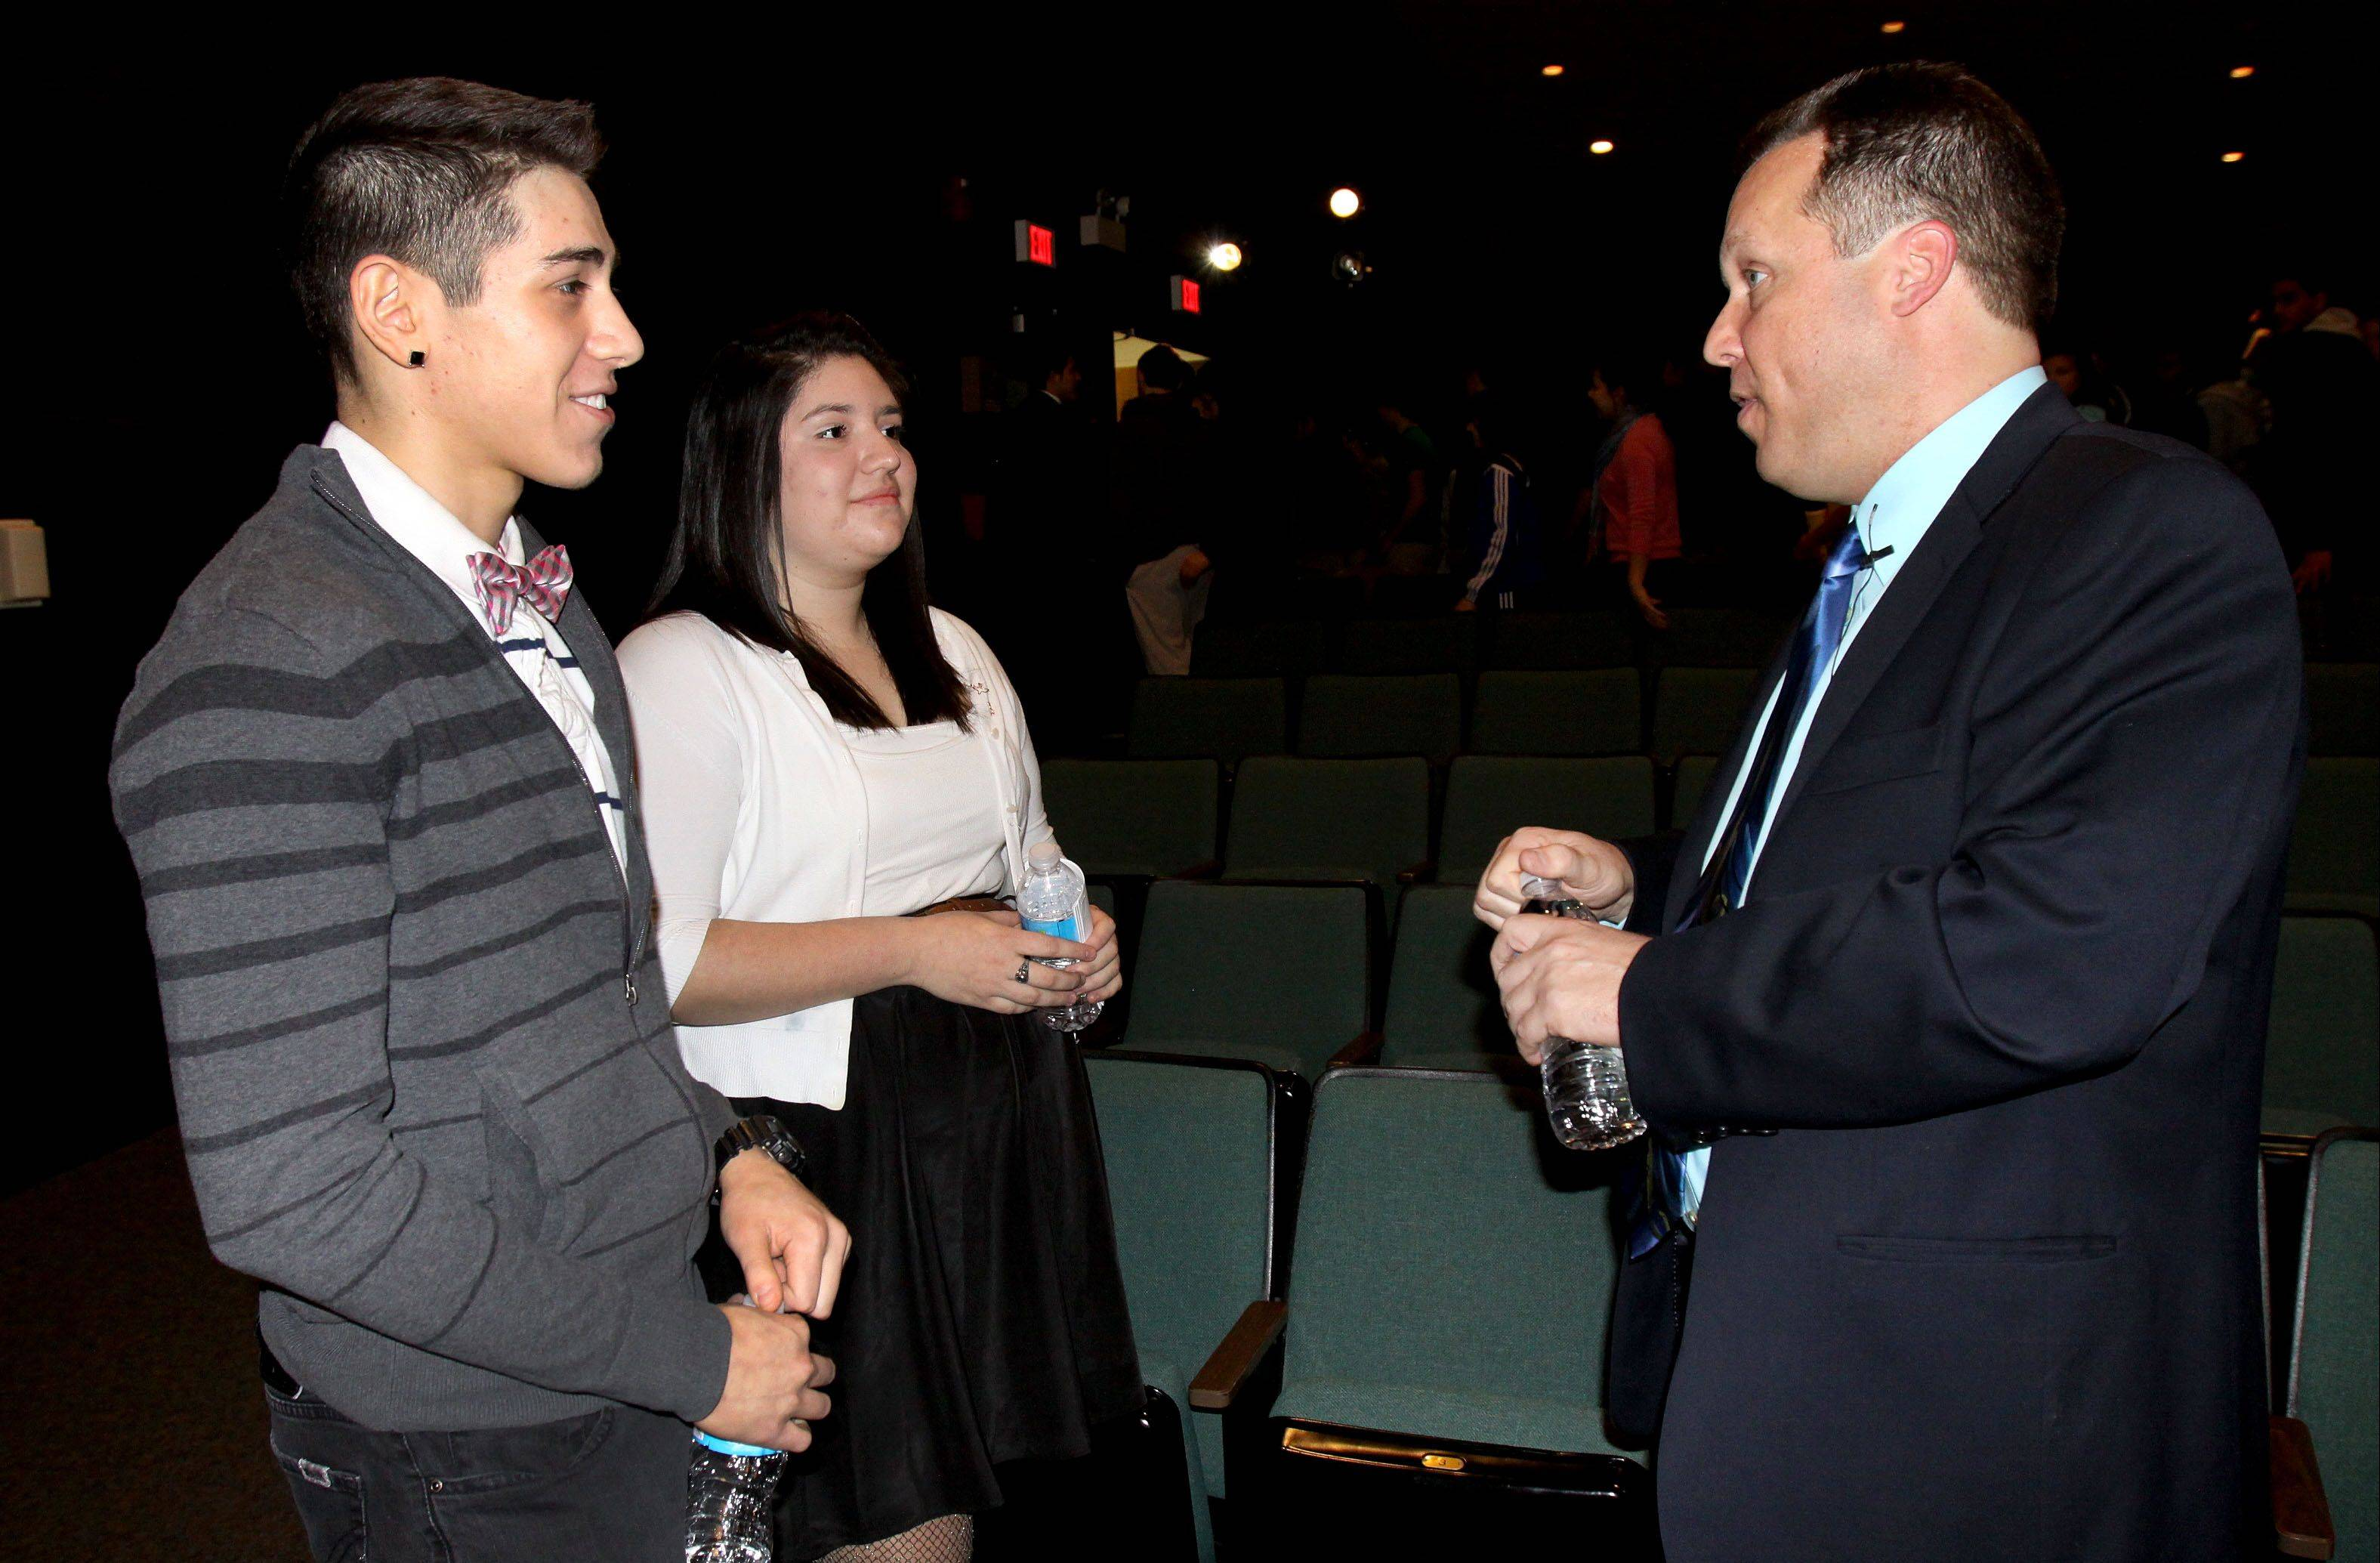 Nick Falco, Fenton High School Class of 1983, chats with seniors Jose Diaz and Stephanie Medina. Falco, a junior varsity coach for Fenton's boys and girls junior varsity soccer teams, was placed on the school's Wall of Fame for his work as a global philanthropist.